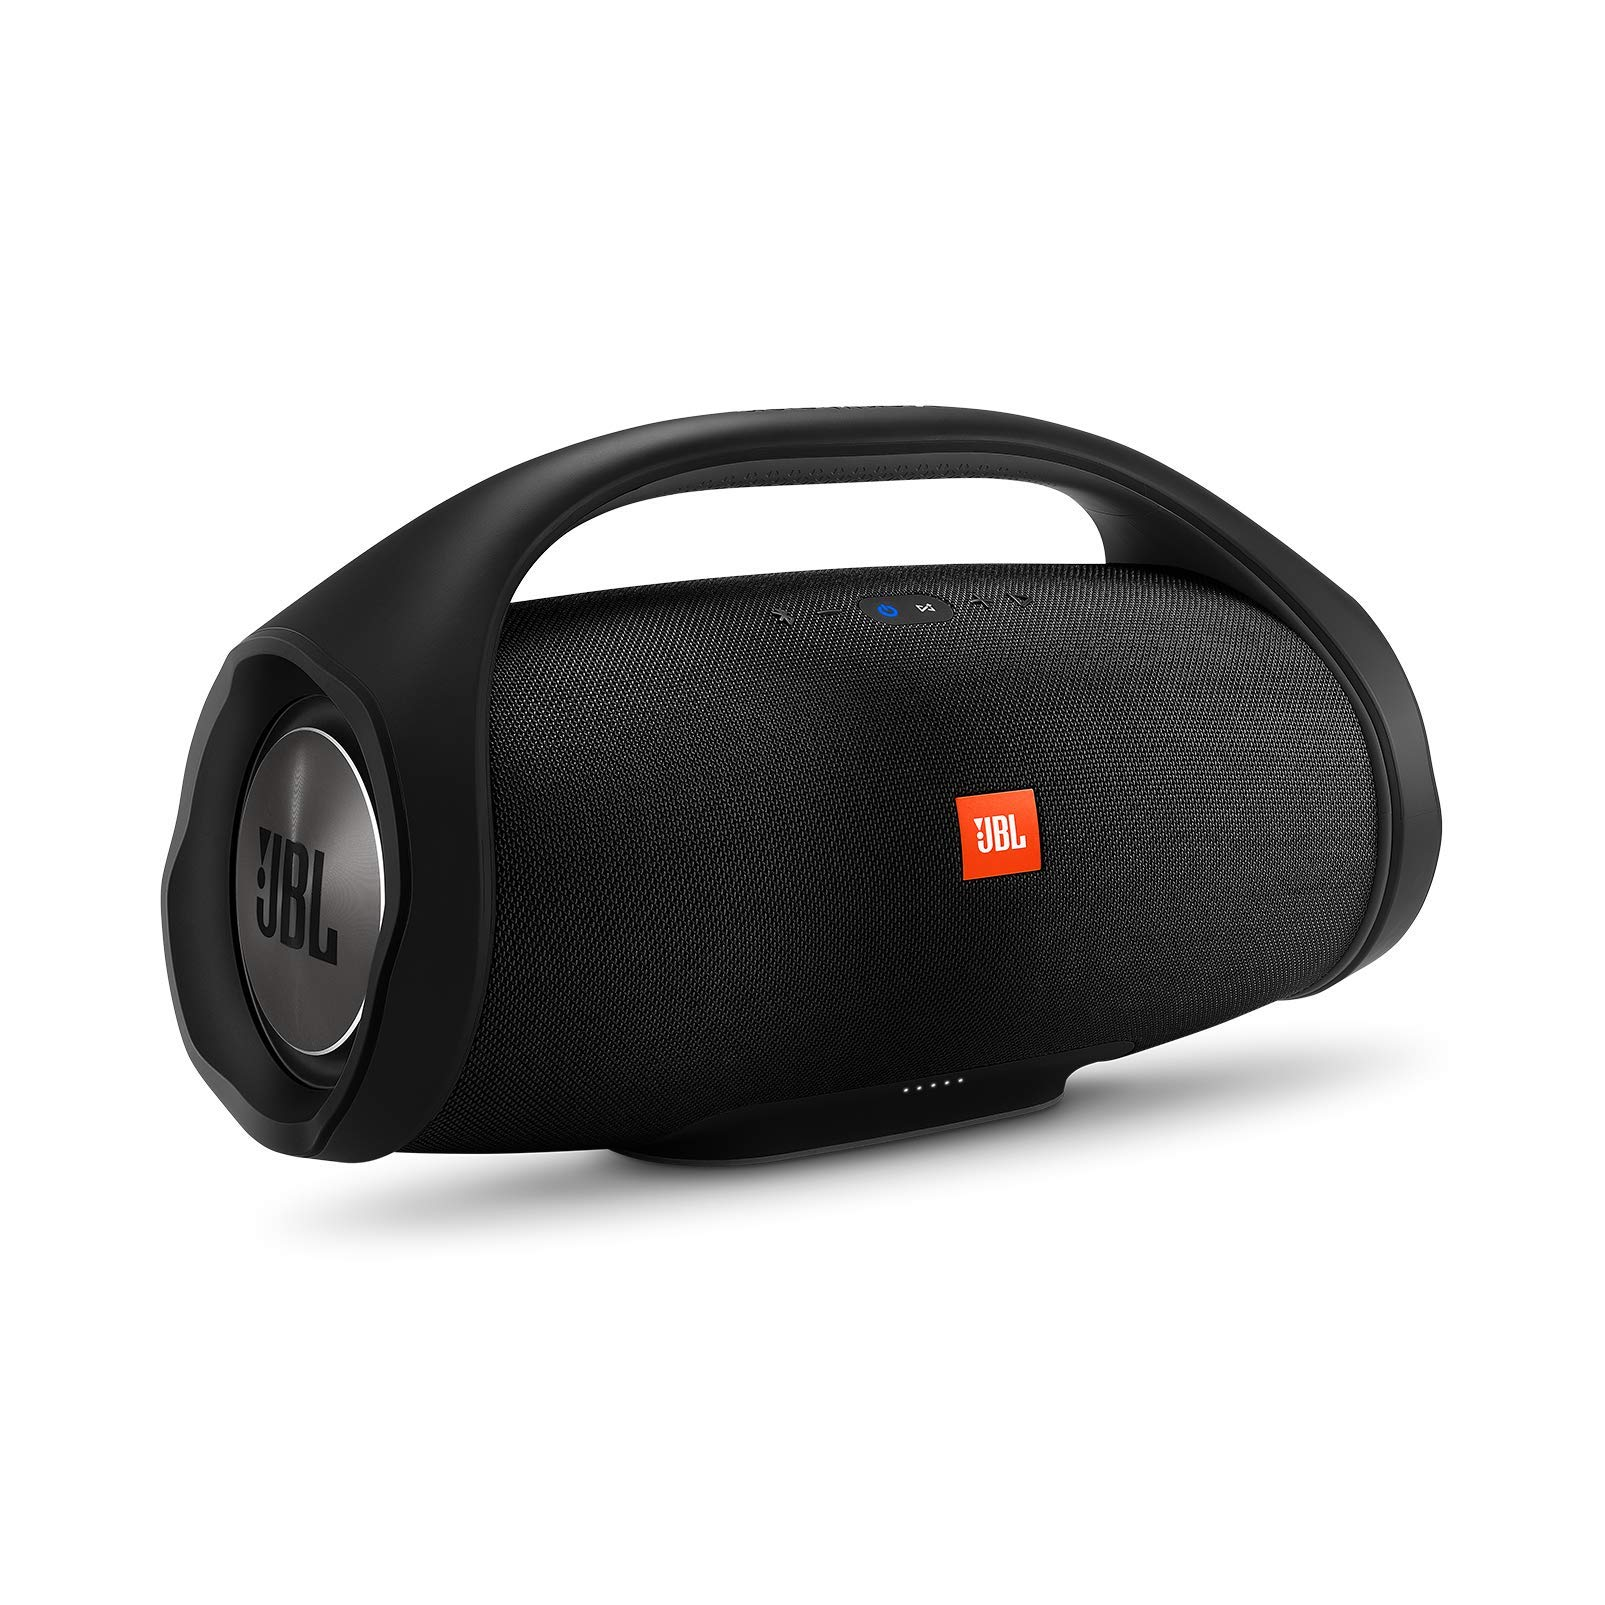 JBL Boombox, Waterproof portable Bluetooth speaker with 24 hours of playtime - Black by JBL